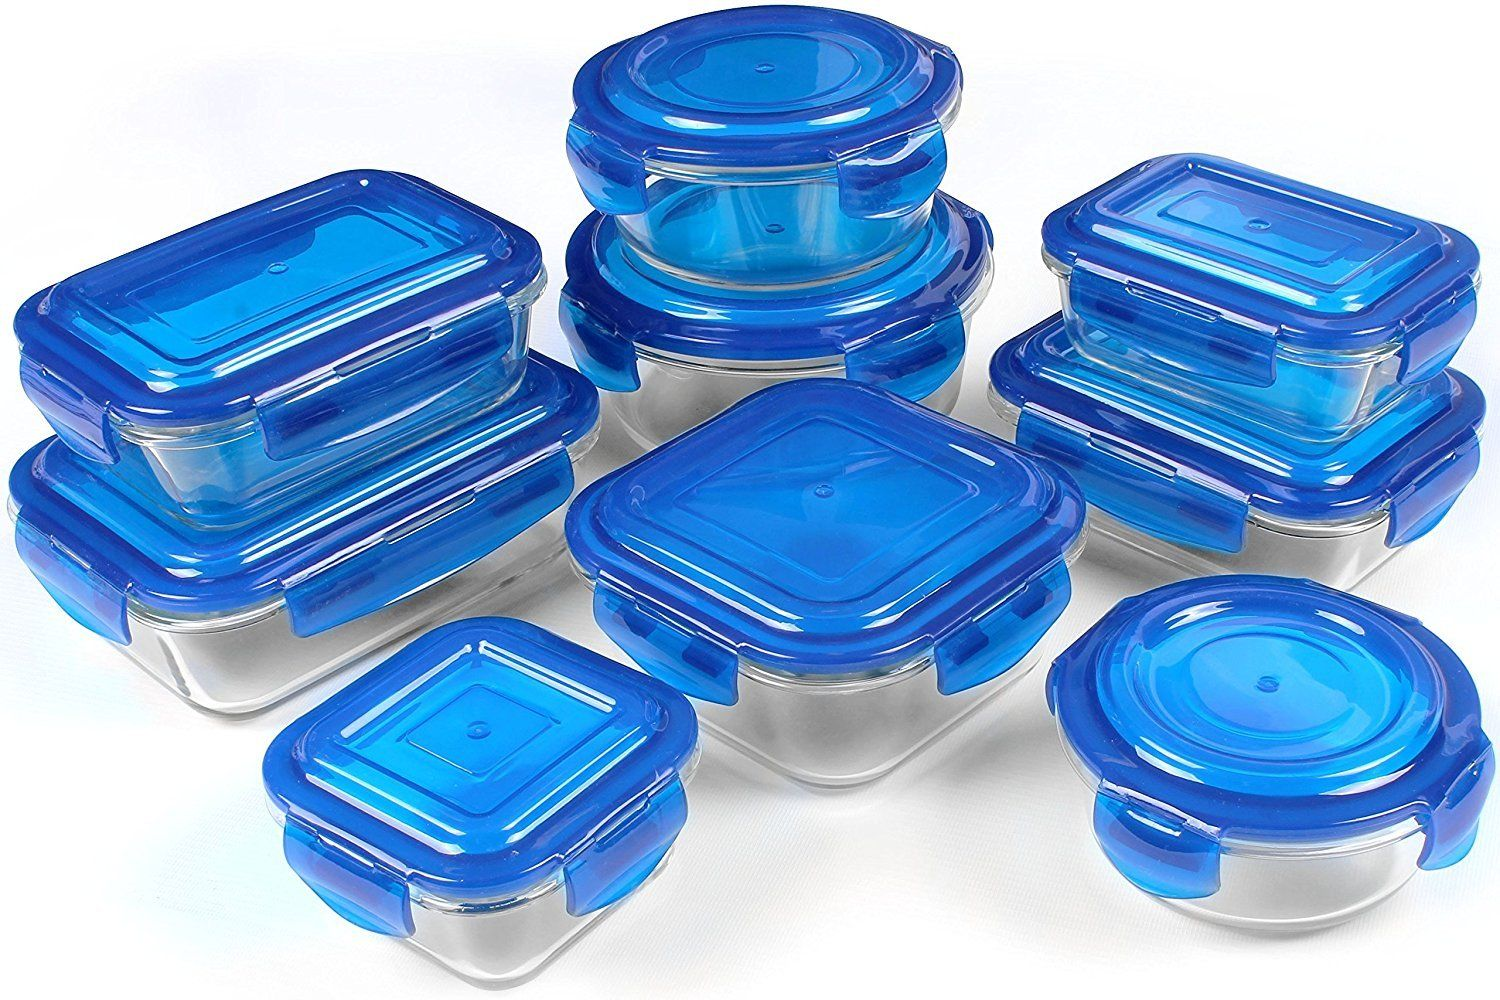 Glass Storage Container Set, Blue, 18 Piece -FDA Approved -Reusable -Utopia 1